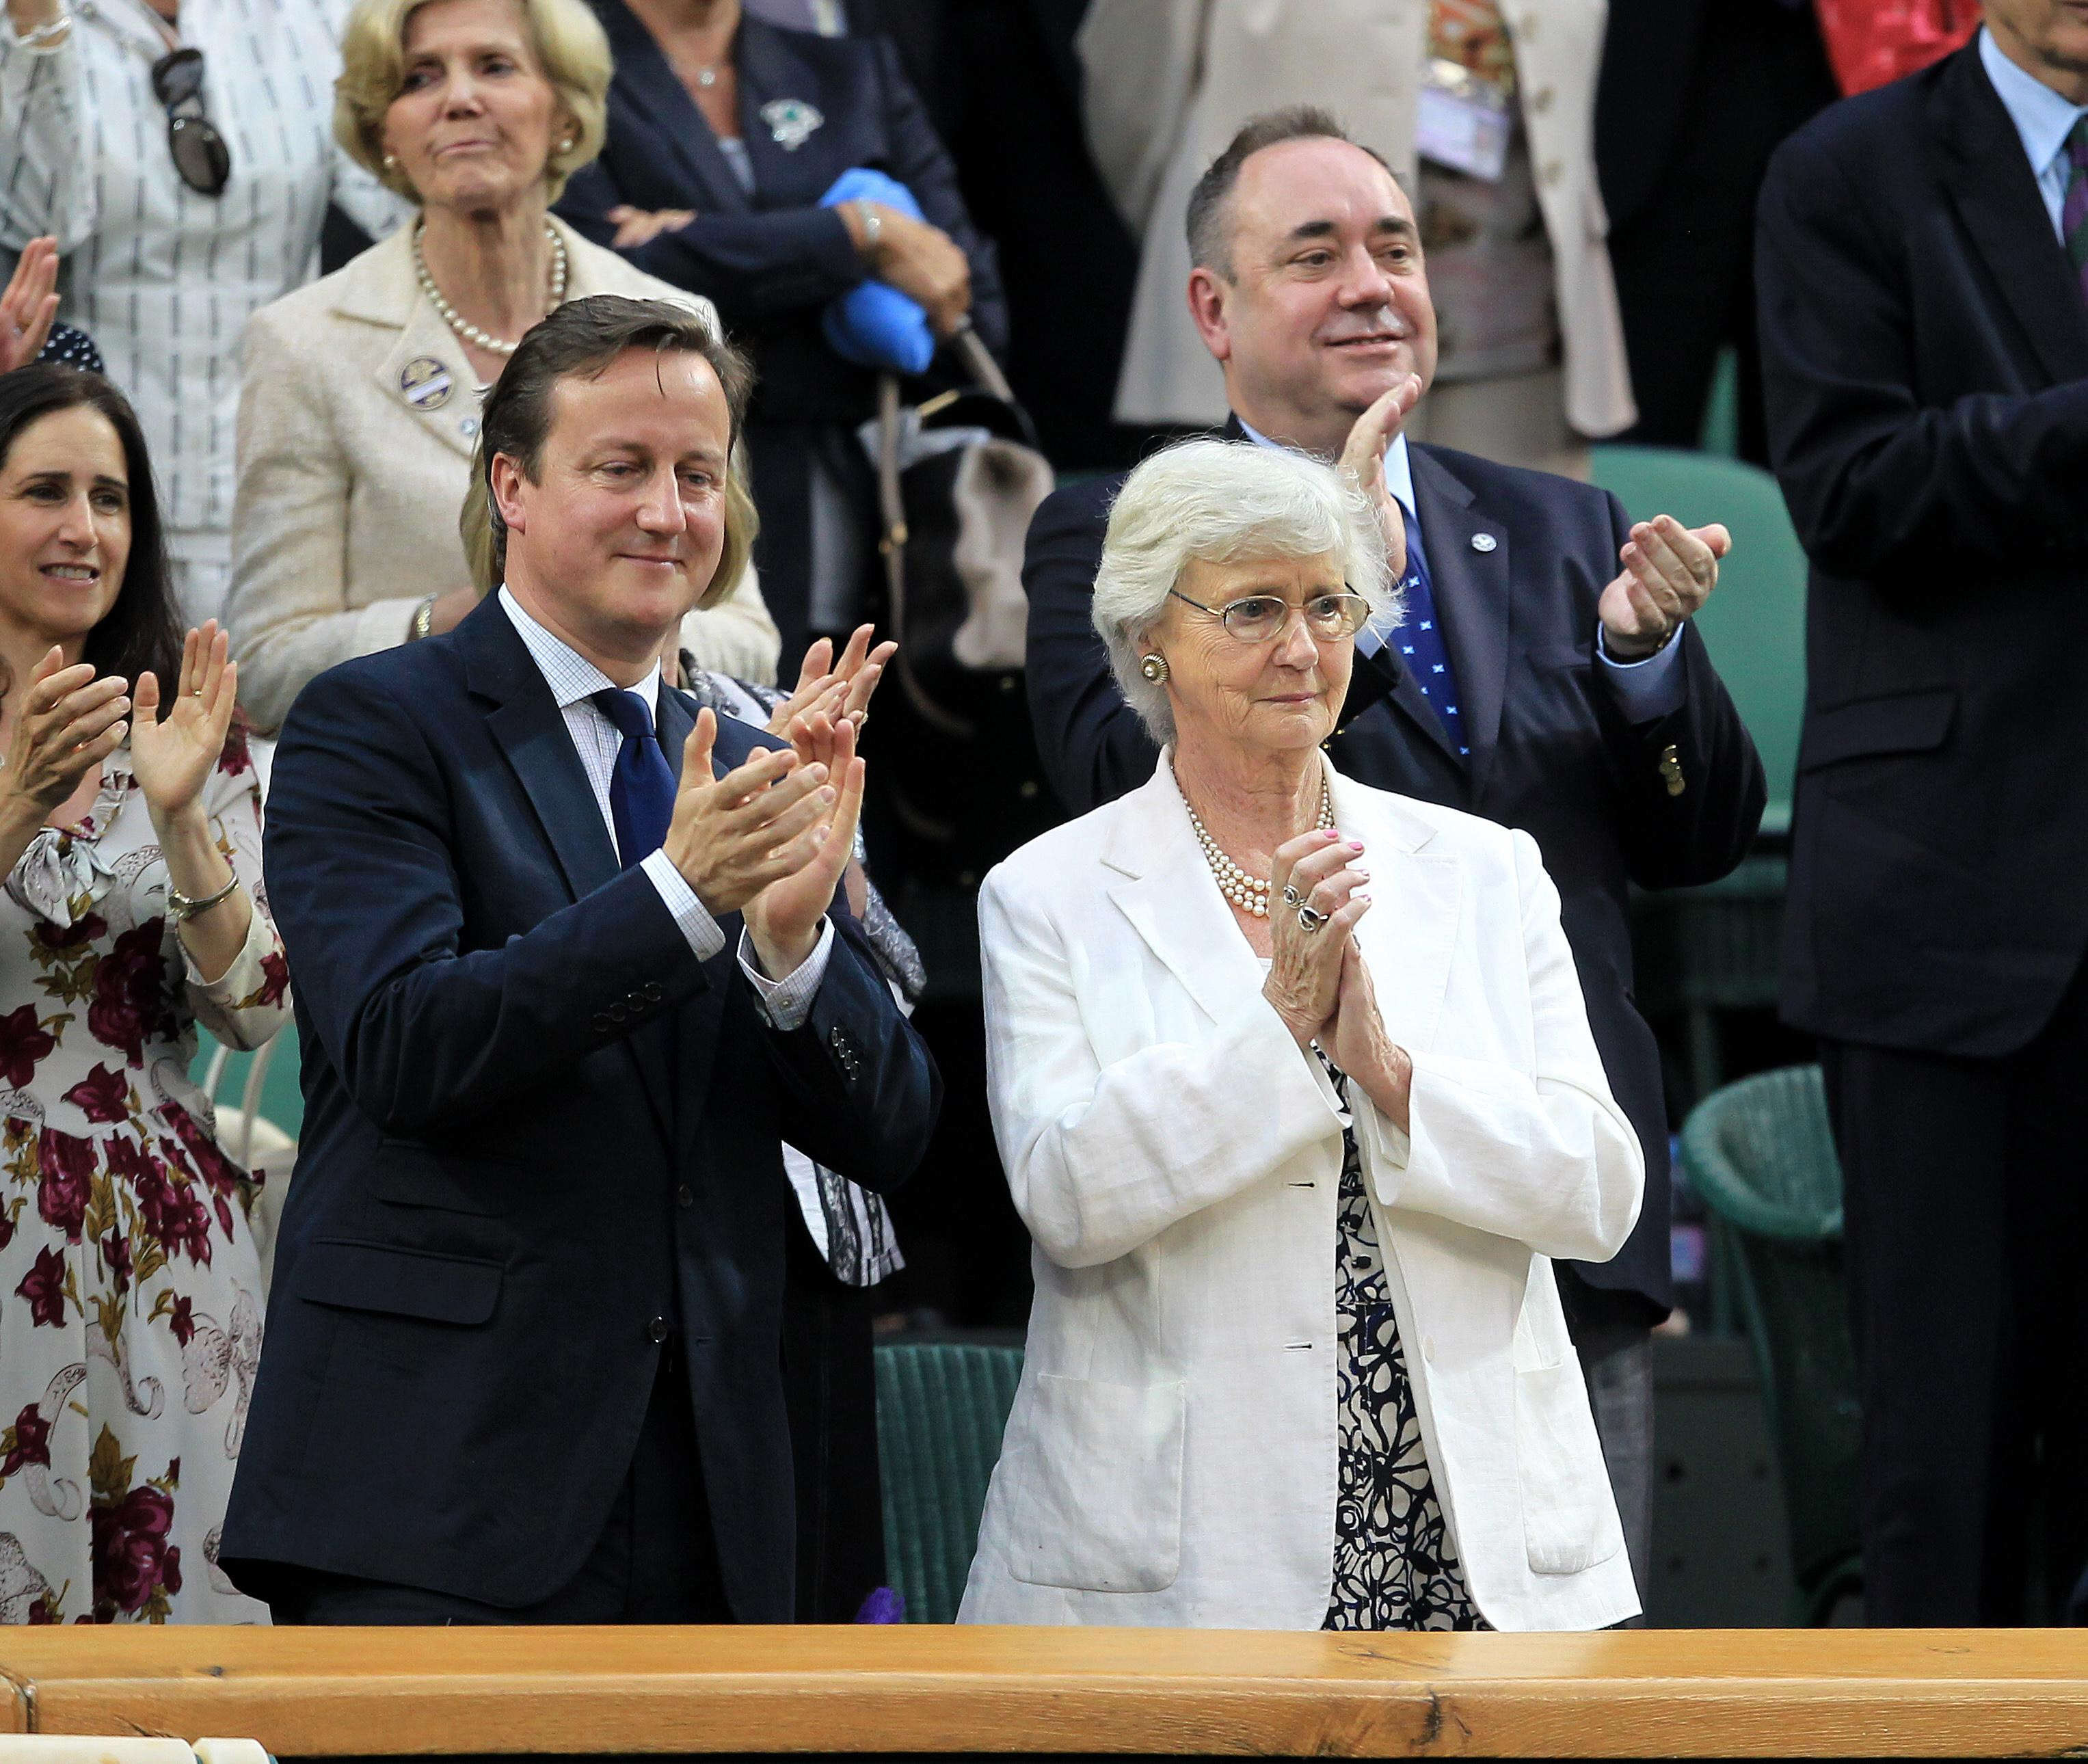 David Cameron Has Even Managed To Piss Off His Own Mum With His Latest Policy PA 25472743